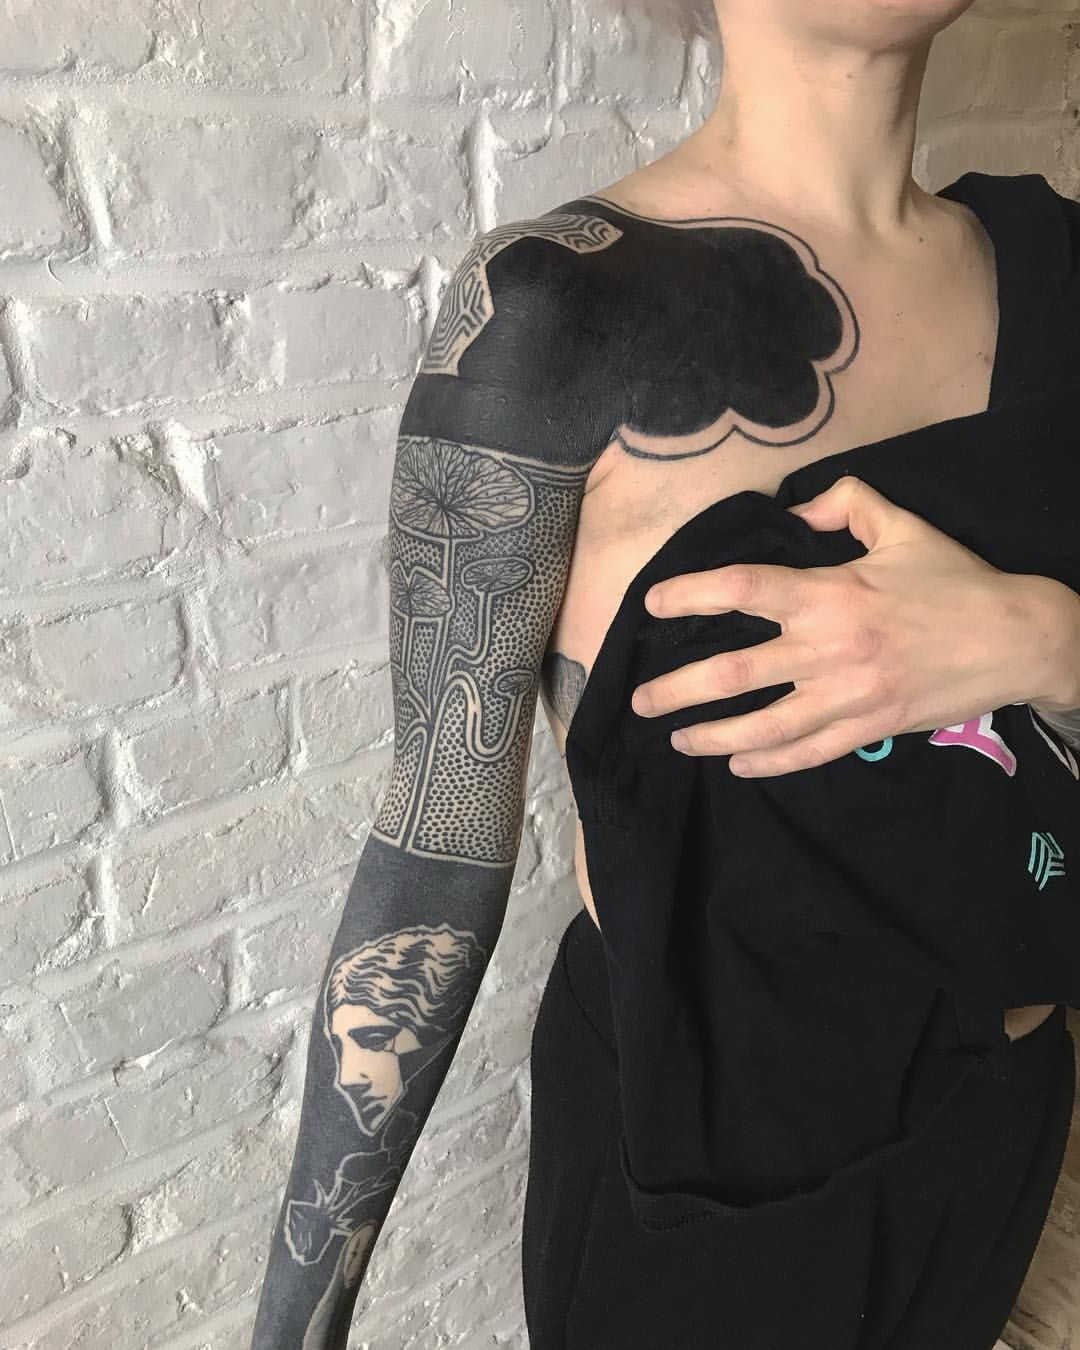 Sarb Sarbtattoo Instagram Photos And Videos With Images